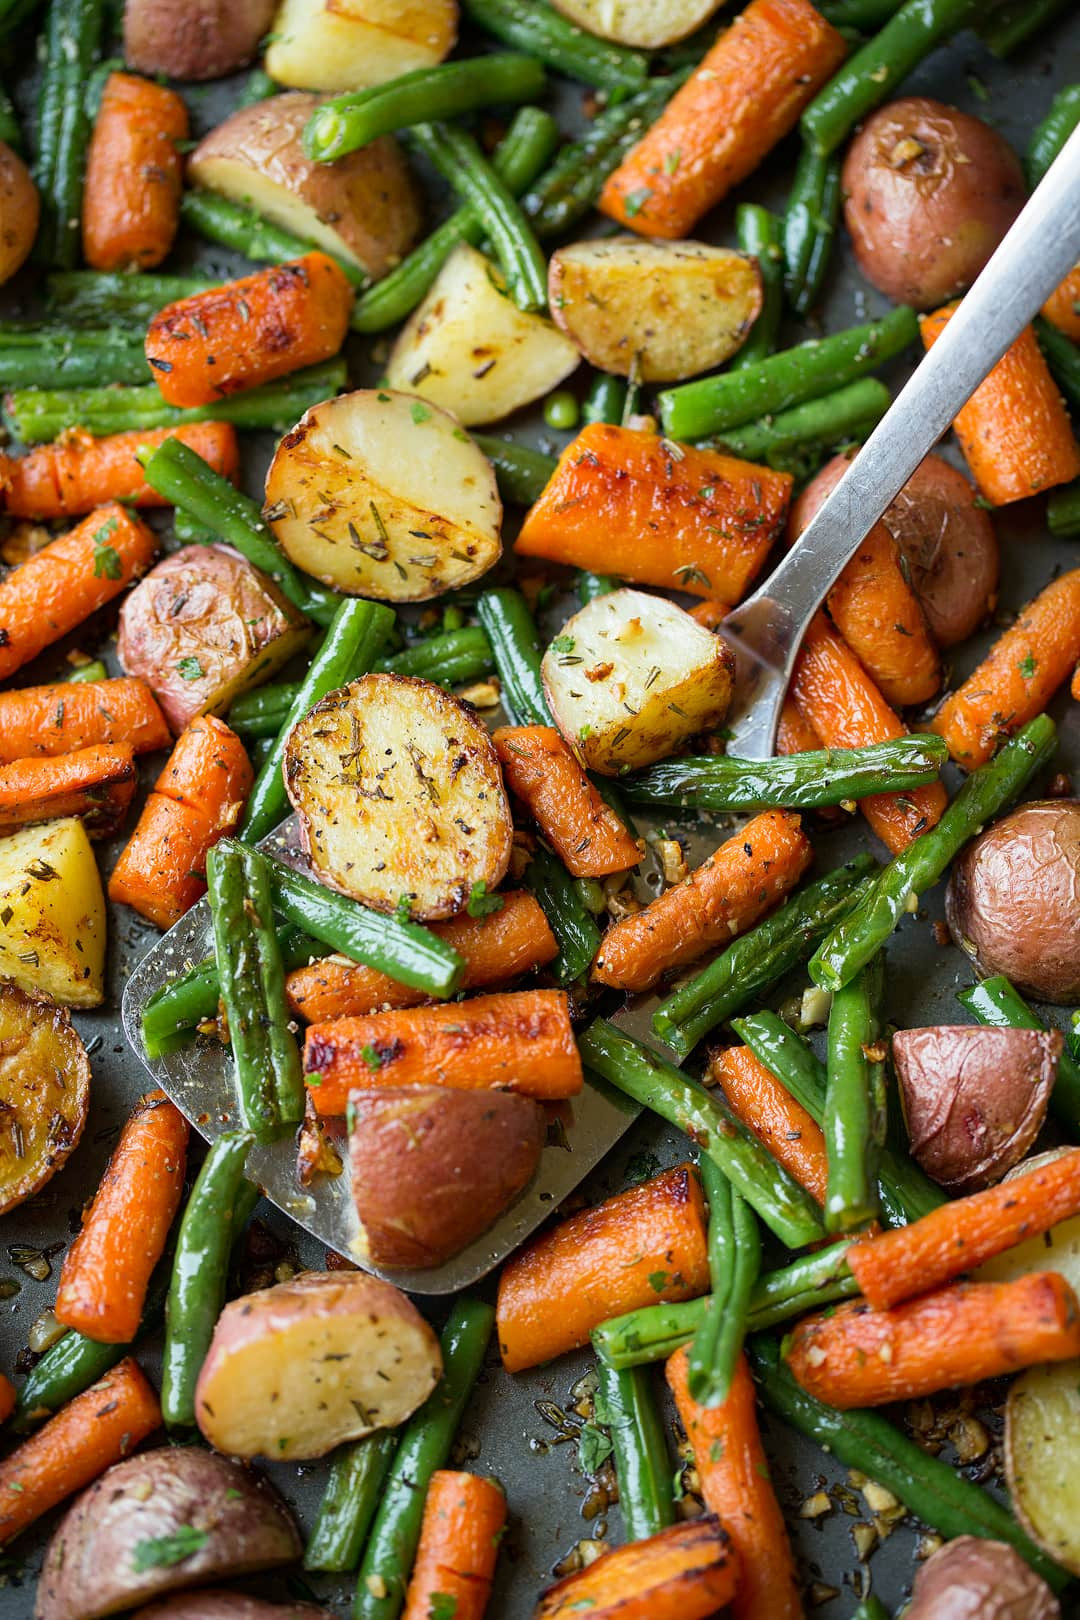 Roasted Sweet Potatoes And Carrots  Roasted Ve ables with Garlic and Herbs Cooking Classy